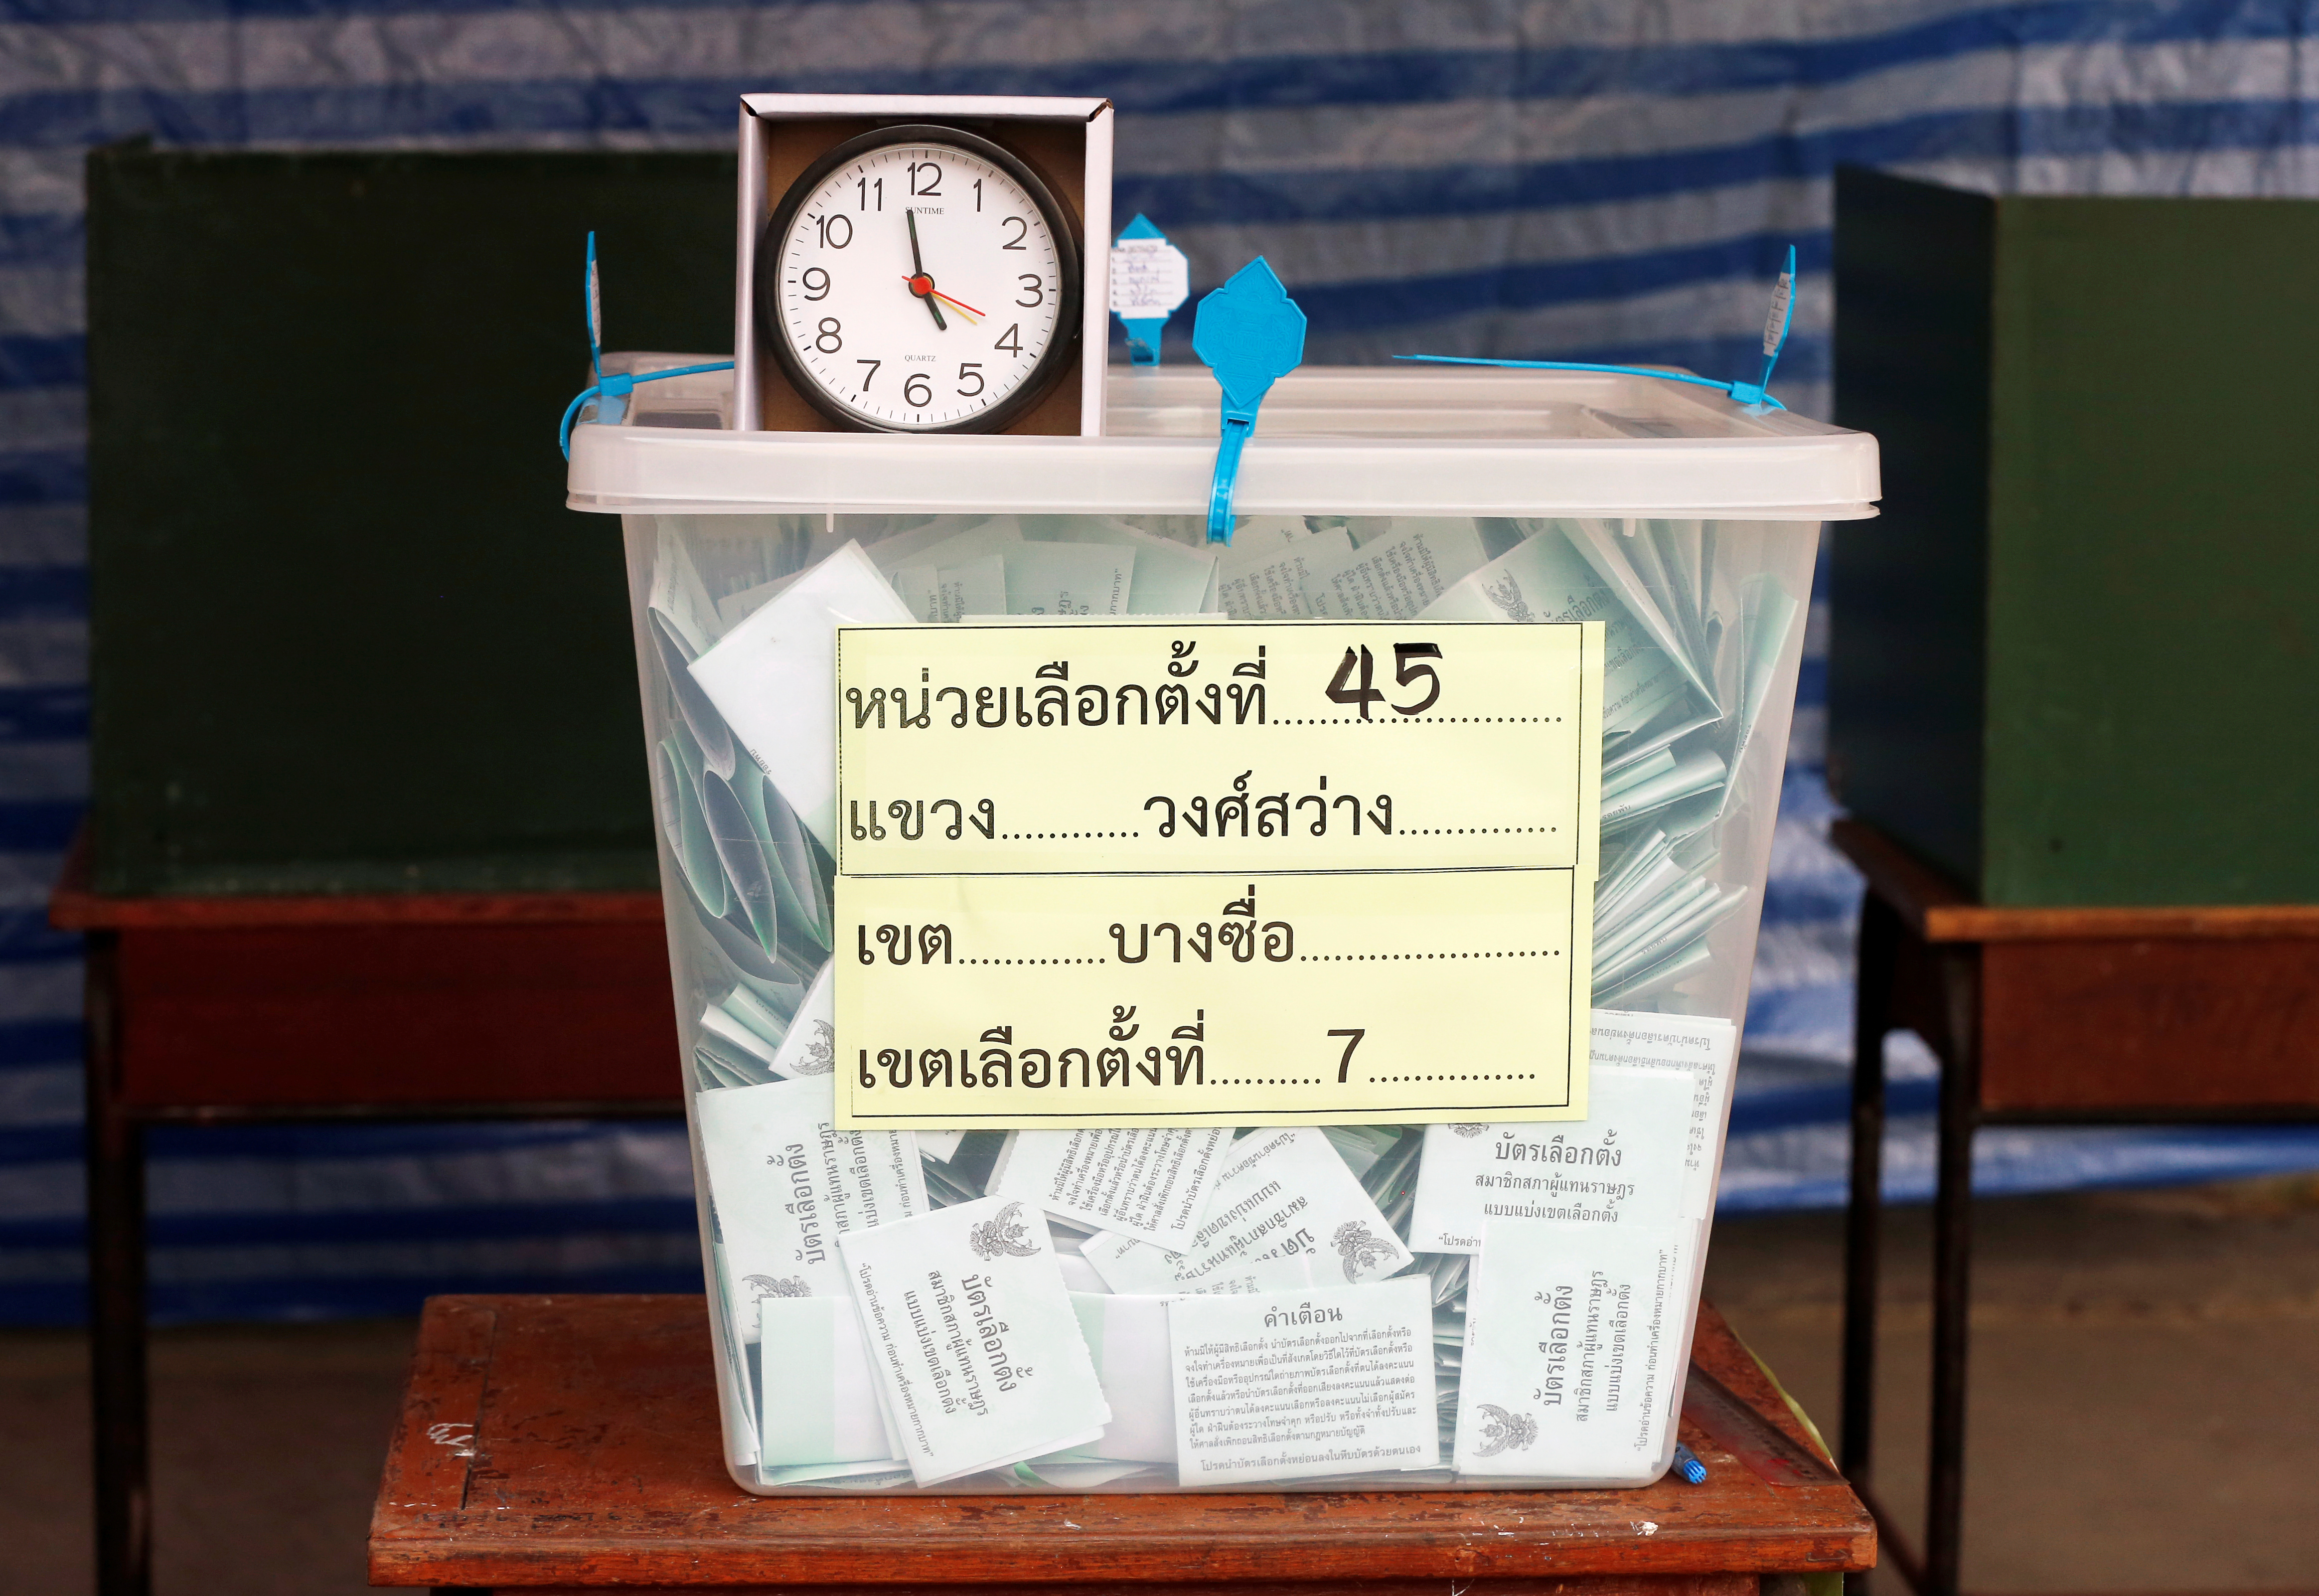 Why Thailand's election results are so murky